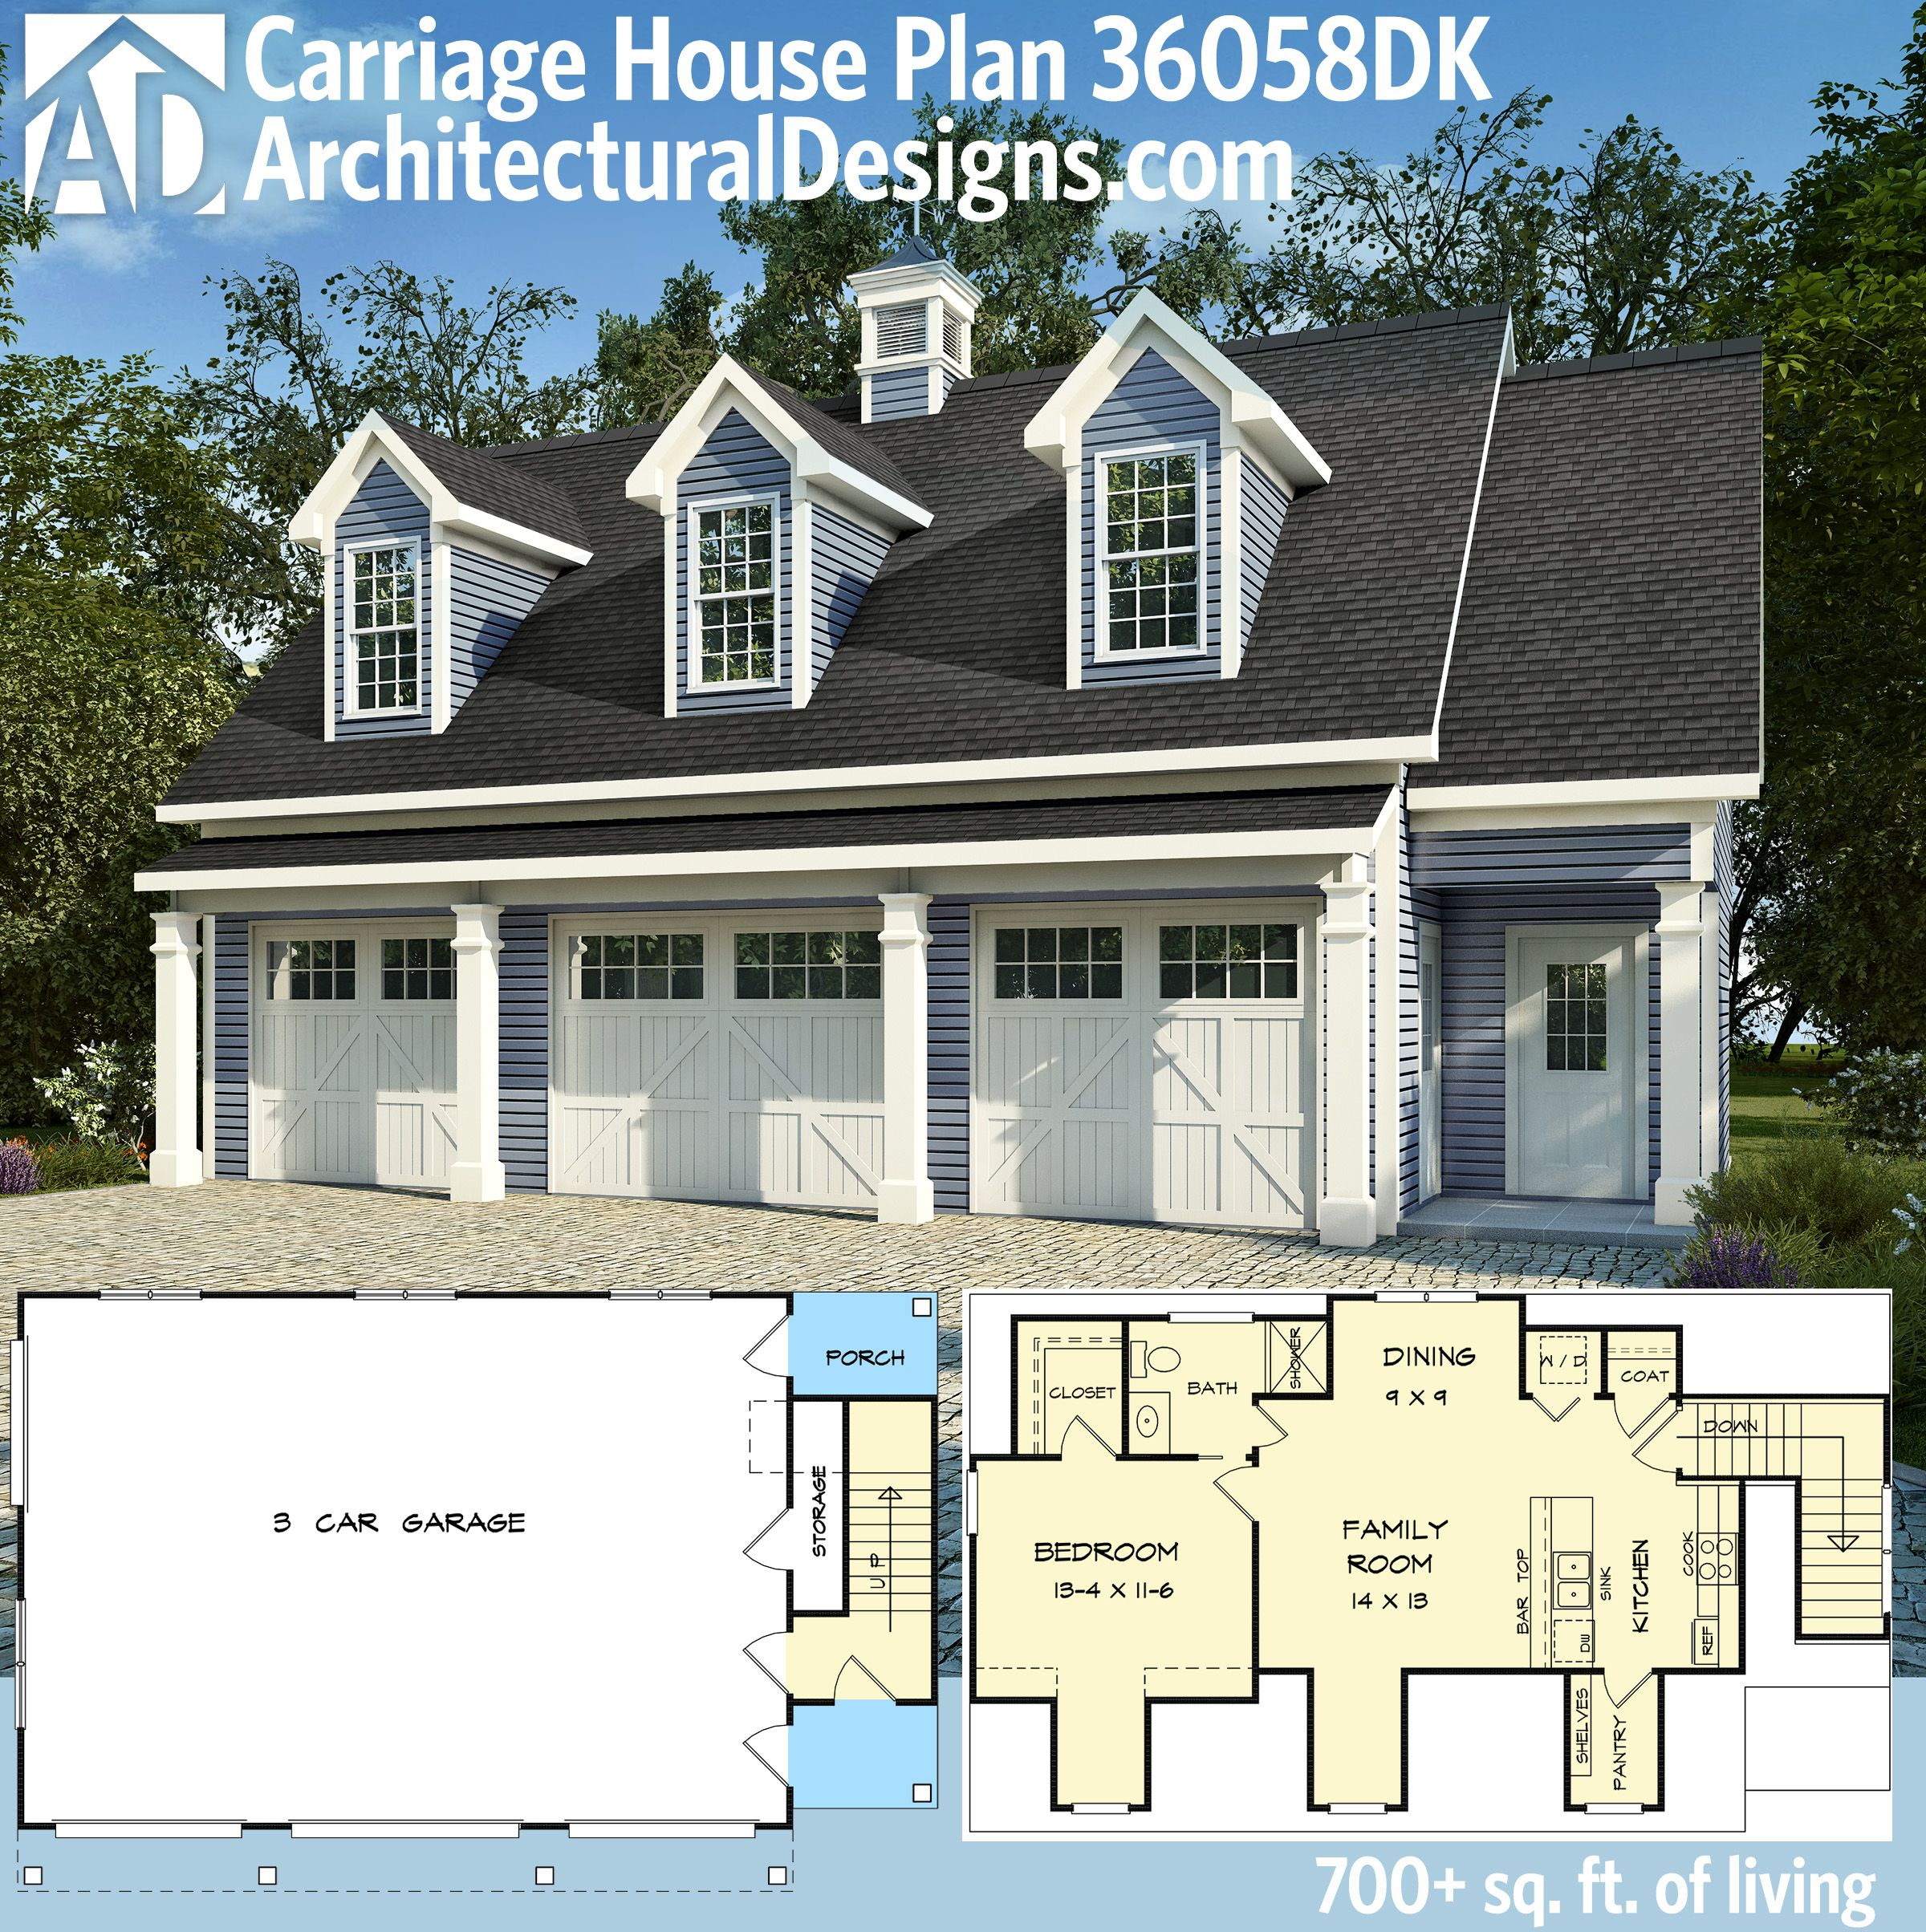 Plan 36058dk 3 car carriage house plan with 3 dormers for 3 car garage house plans